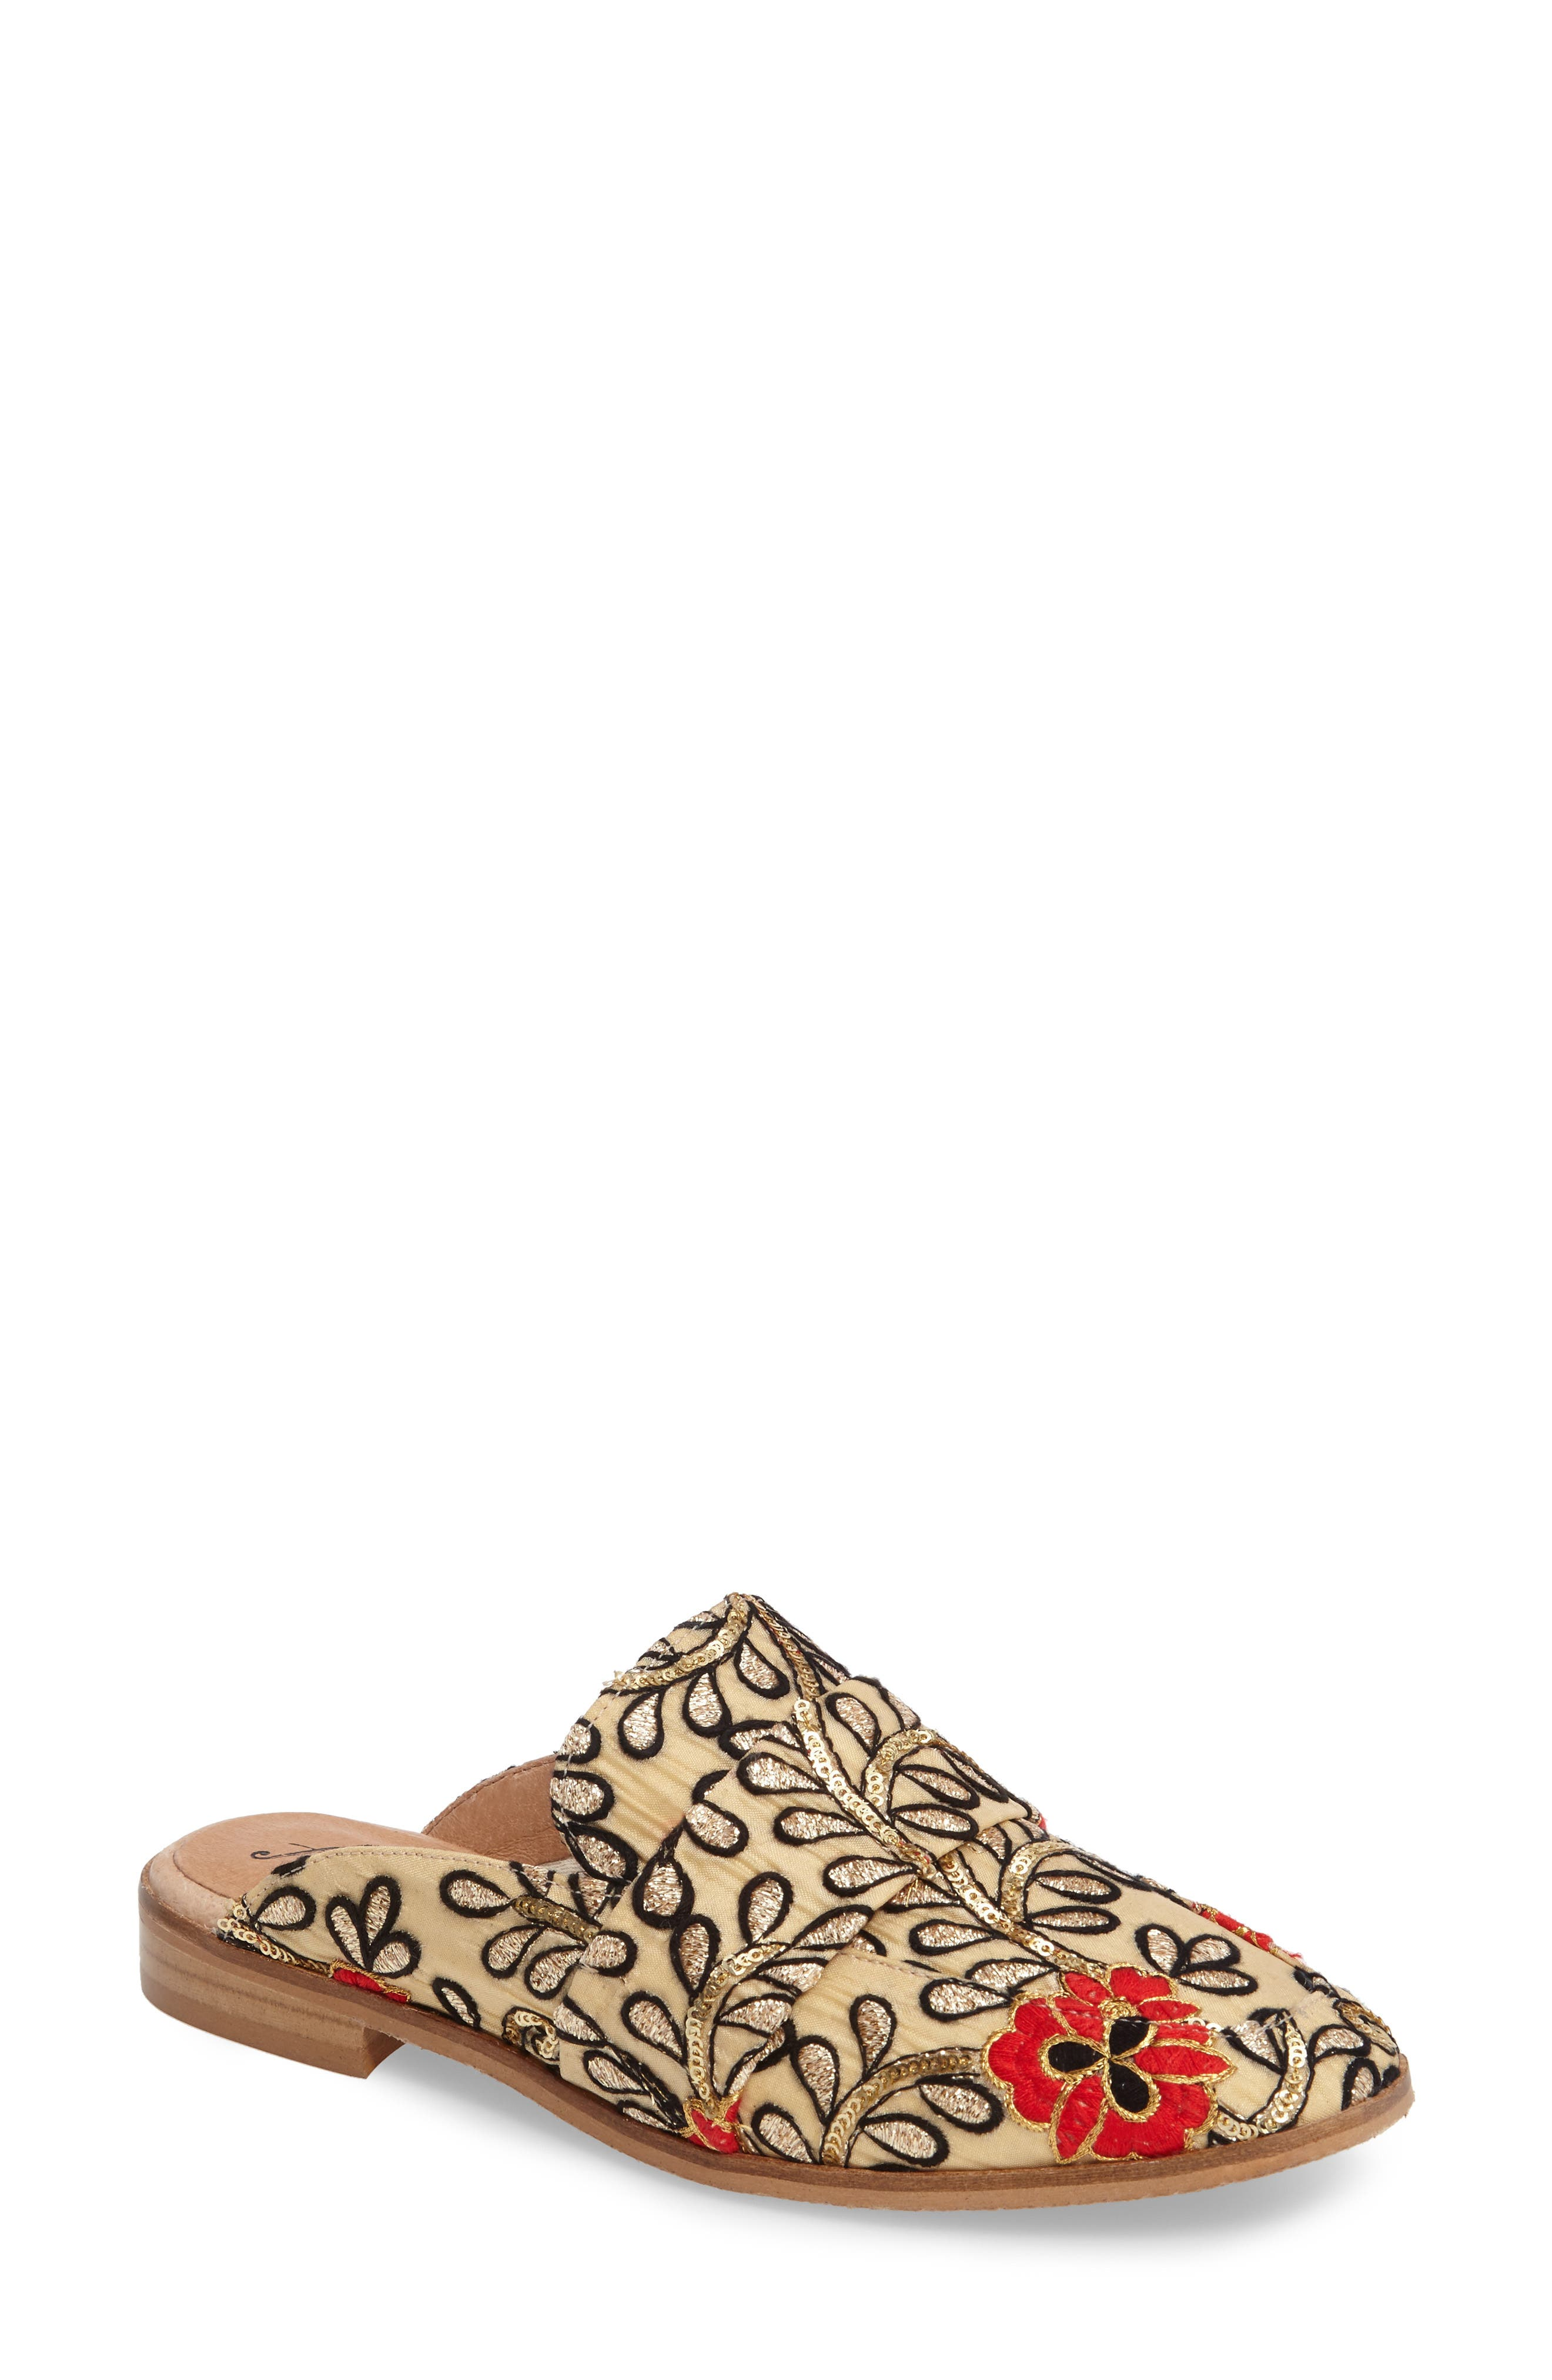 Alternate Image 1 Selected - Free People At Ease Loafer (Women)